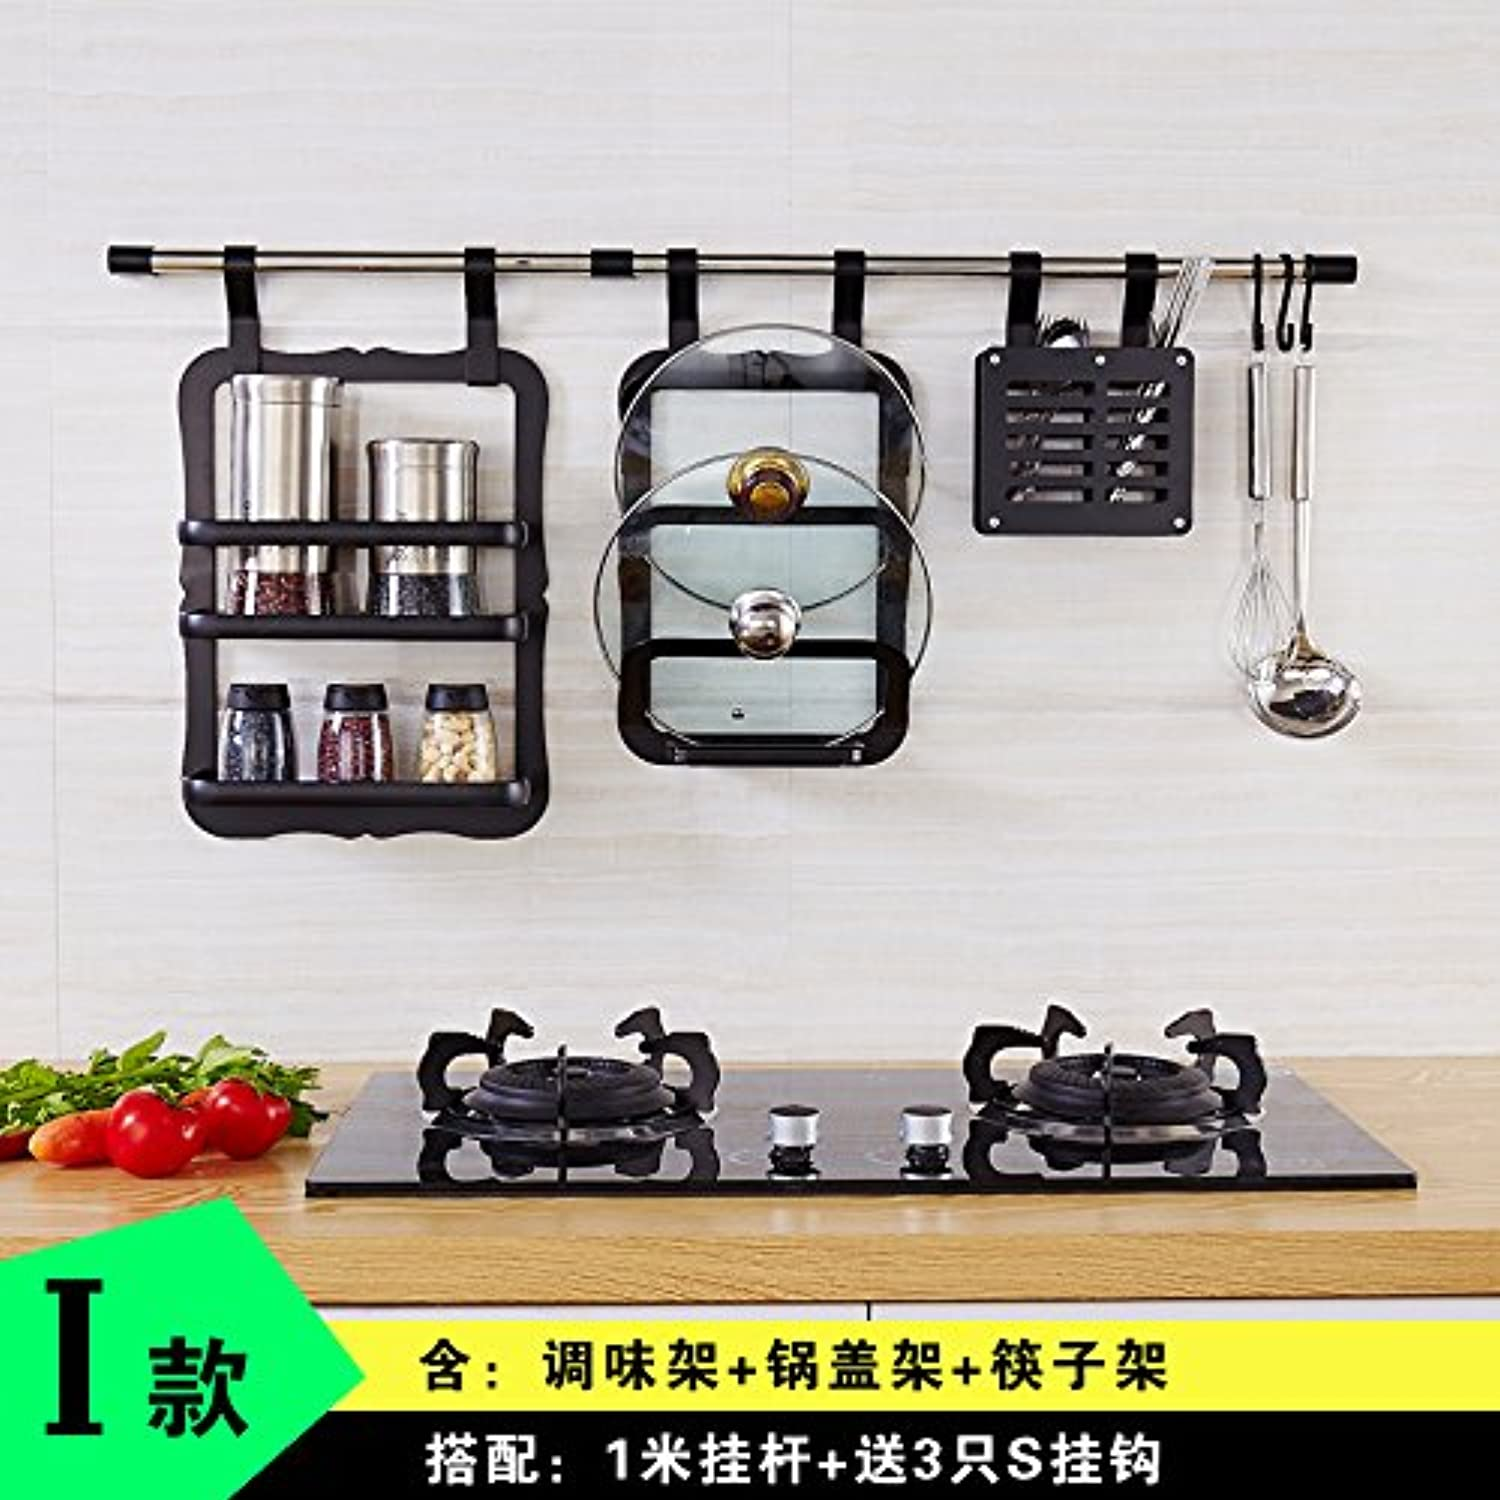 Maifeini Black Kitchen Pendant, Multi-Function Space Aluminum Kitchen, Shelf, Wall Hanging, Seasoning Rack, Hanging Rack, Hanging Rod Combination,I